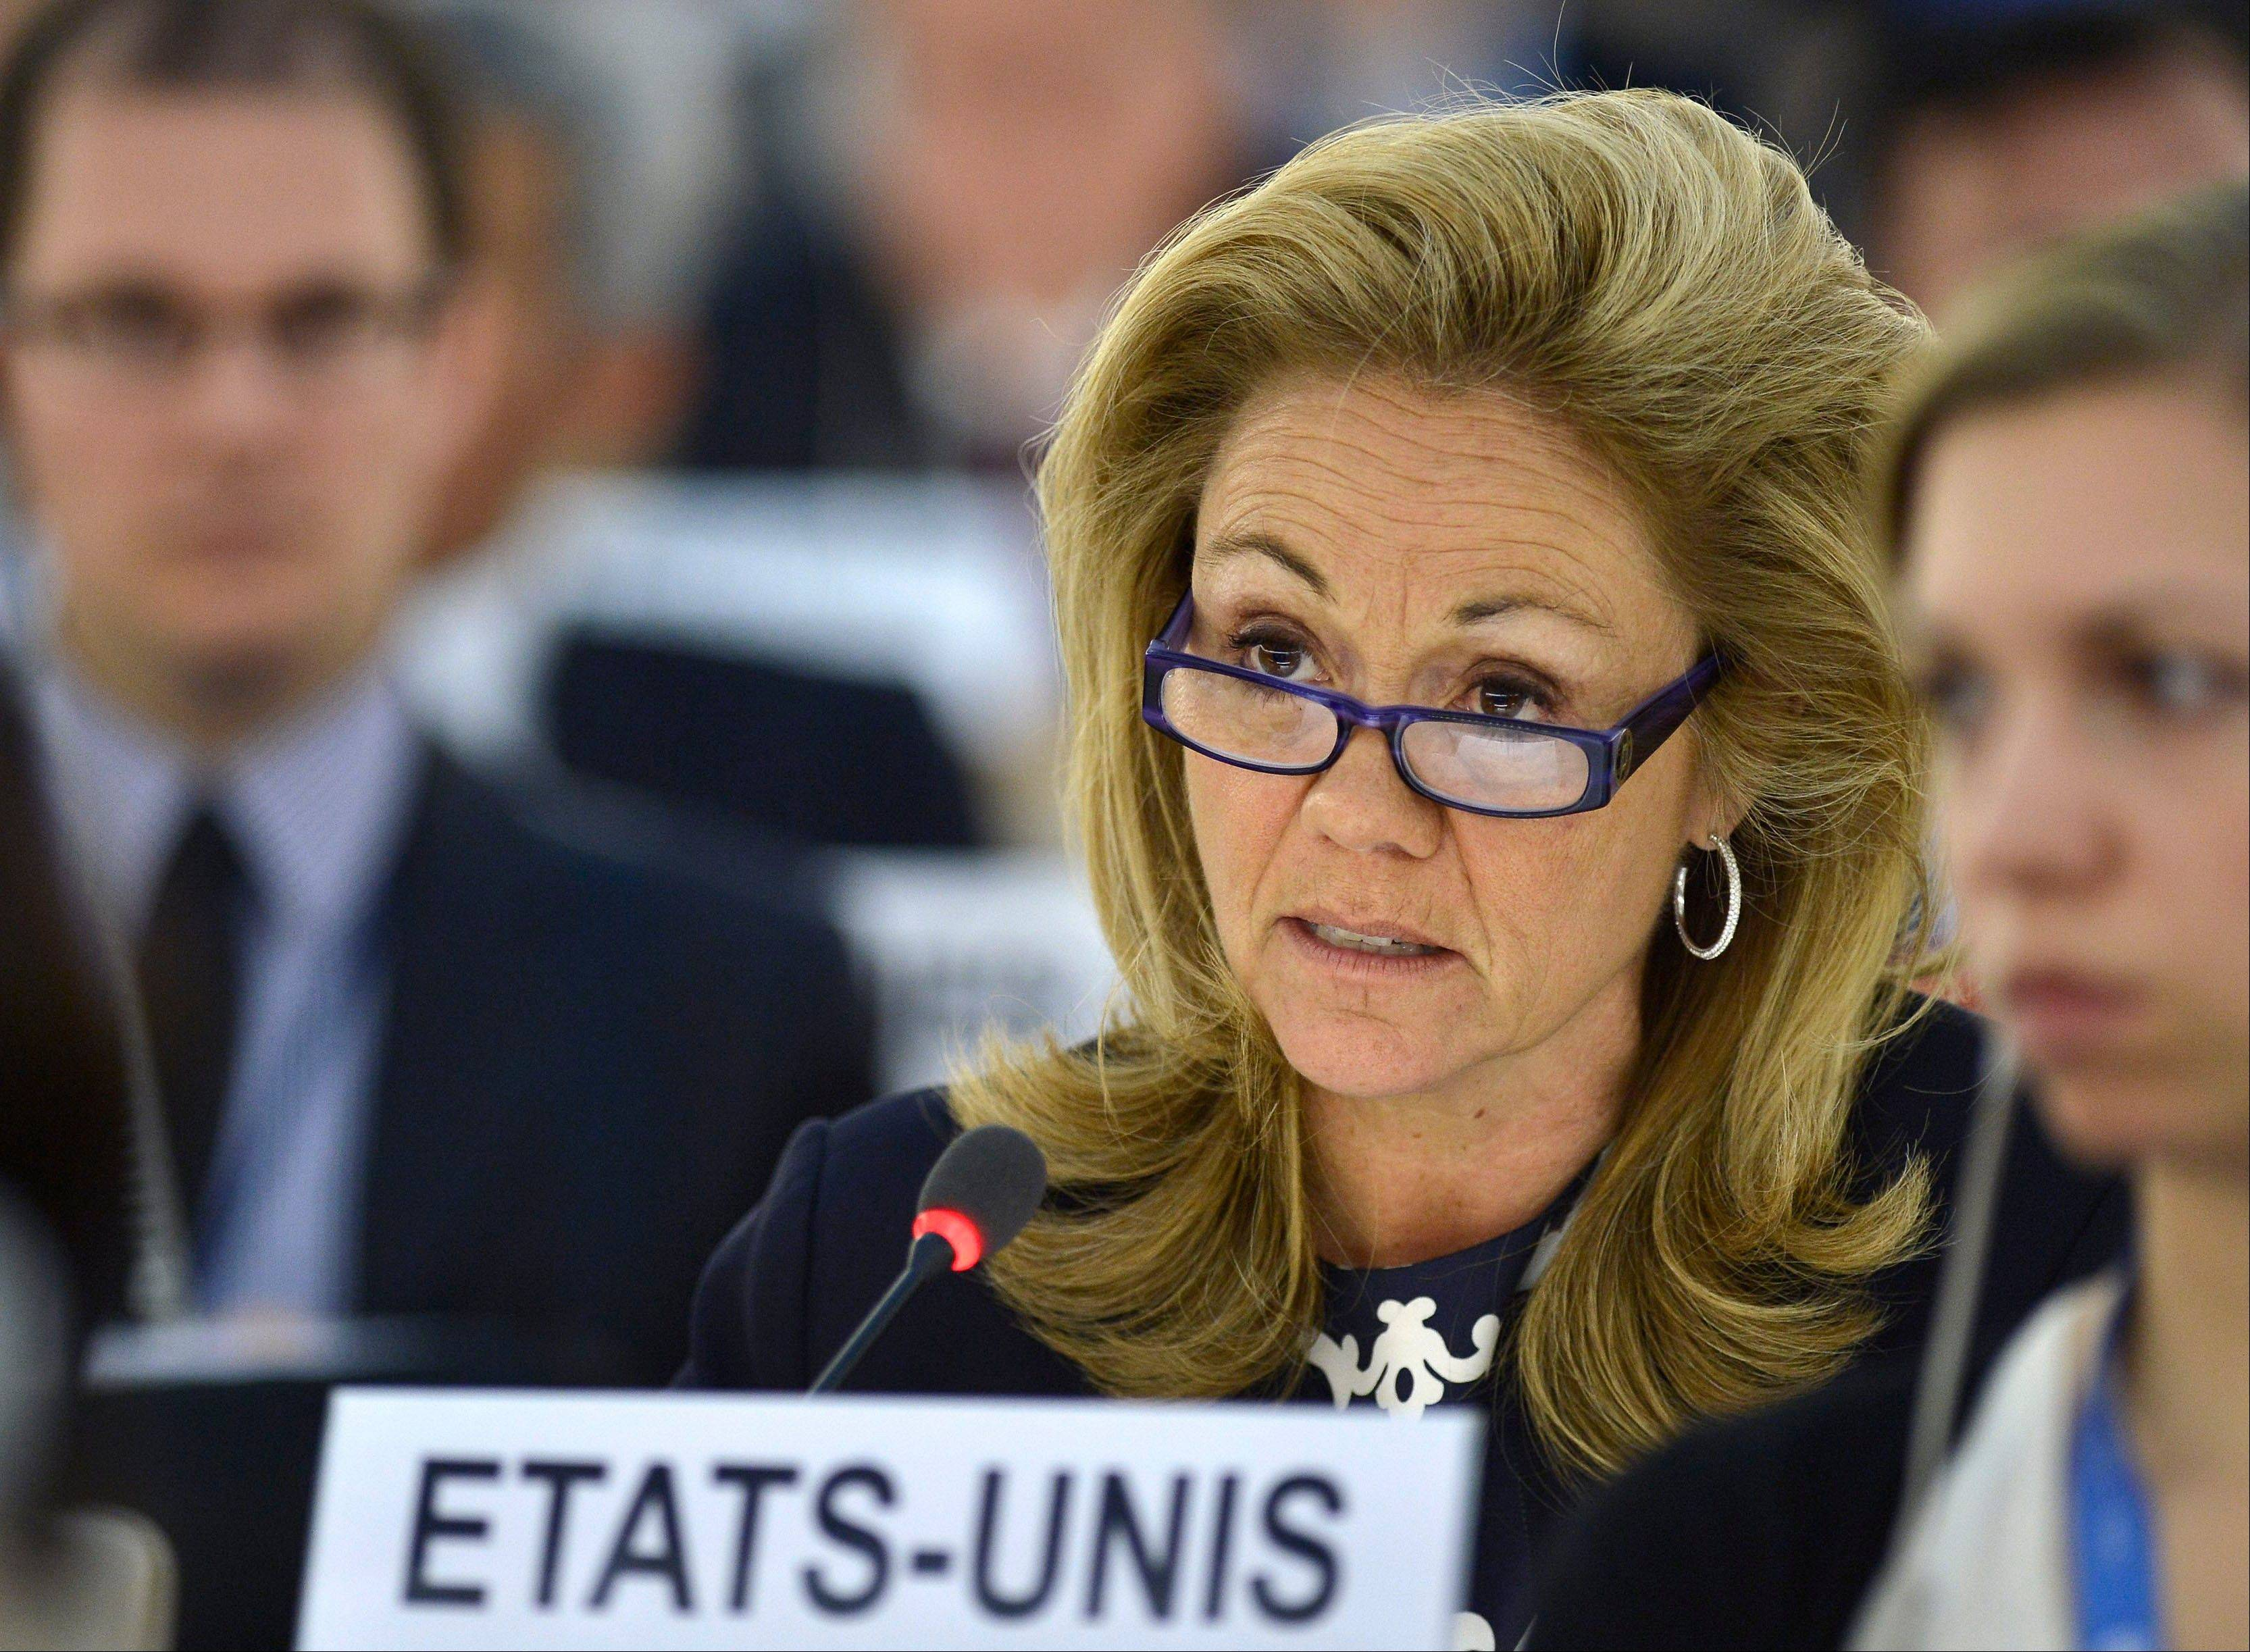 U.S. Ambassador and Representative to the Human Rights Council Eileen Chamberlain Donahoe speaks during the urgent debate on the situation in Syria at the 23rd session of the Human Rights Council at the European headquarters of the United Nations in Geneva, Switzerland, Wednesday.